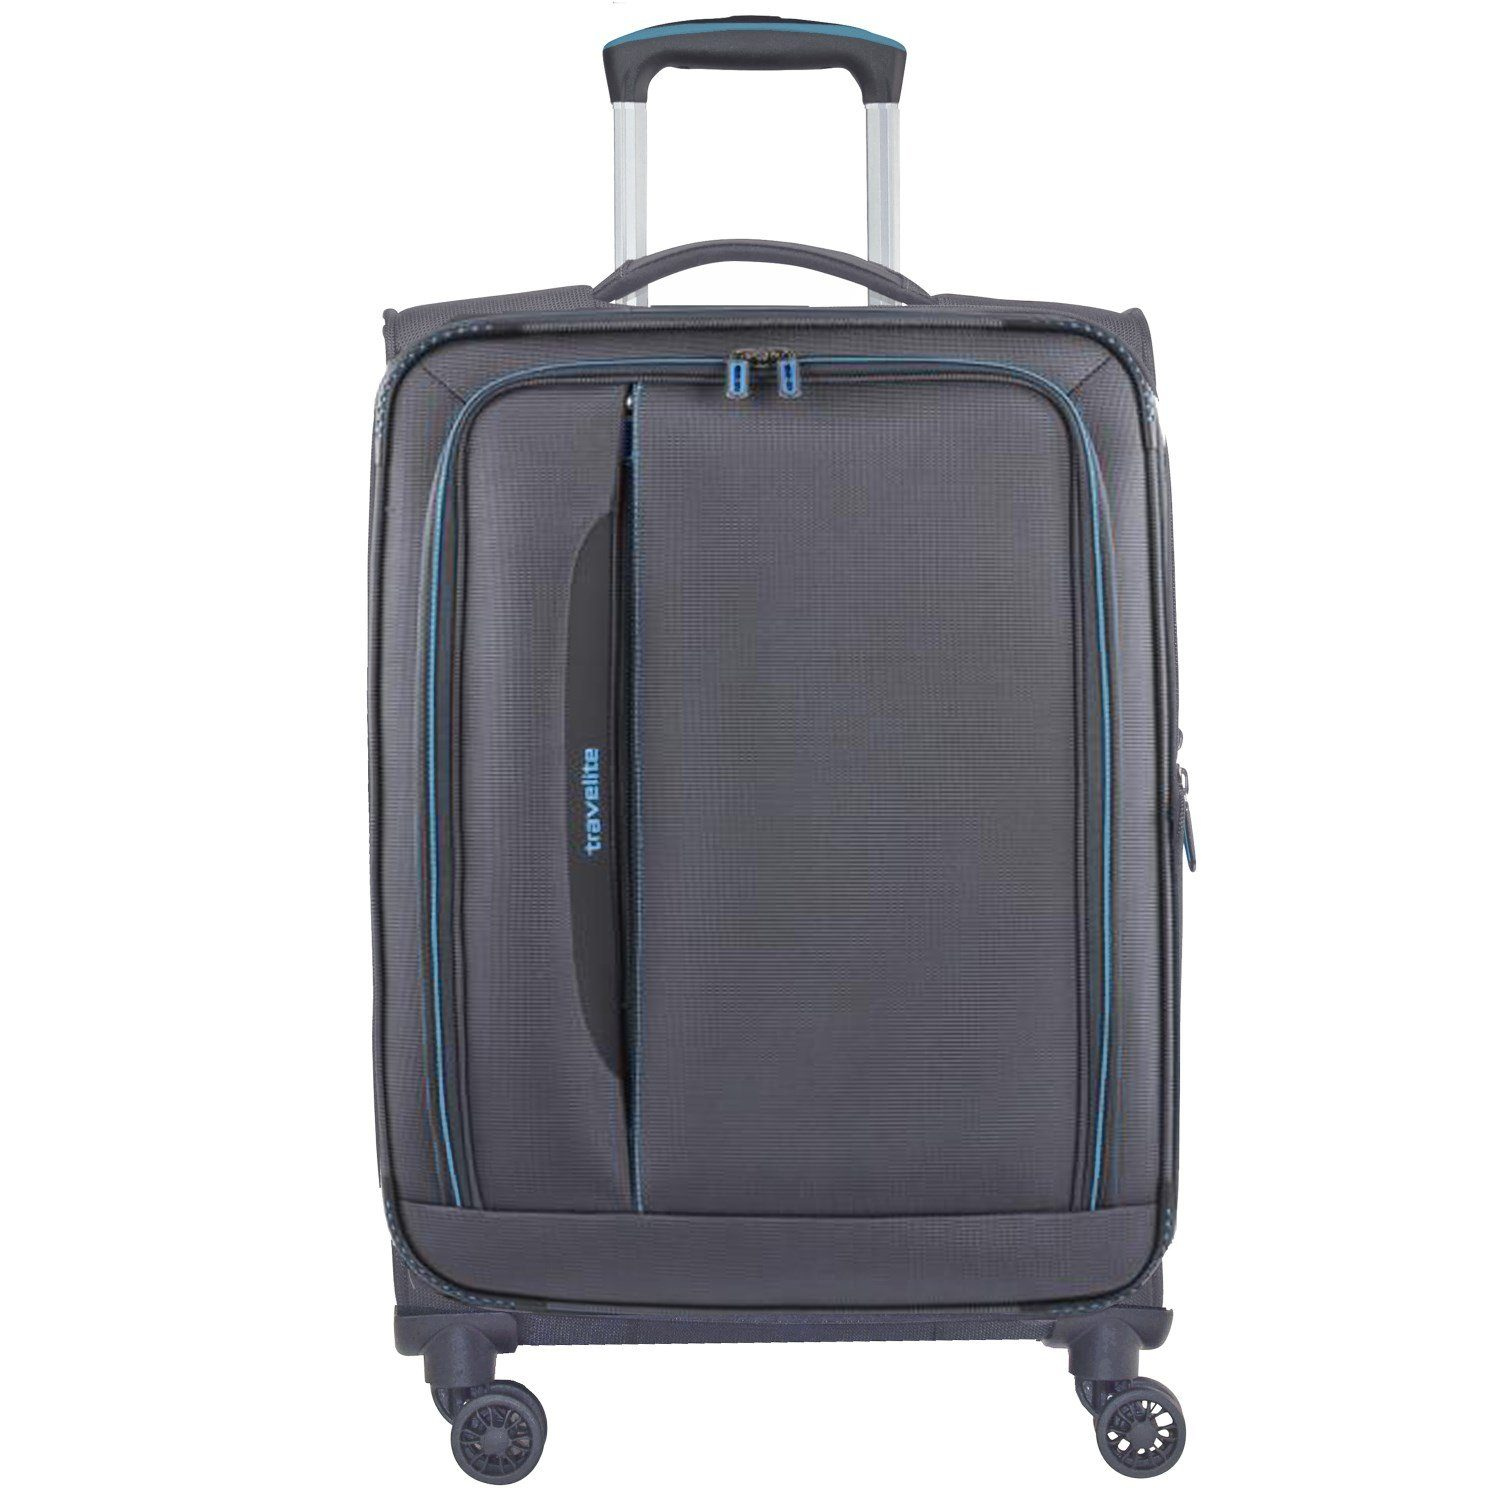 Travelite CrossLITE 4-Rollen Trolley 77 cm